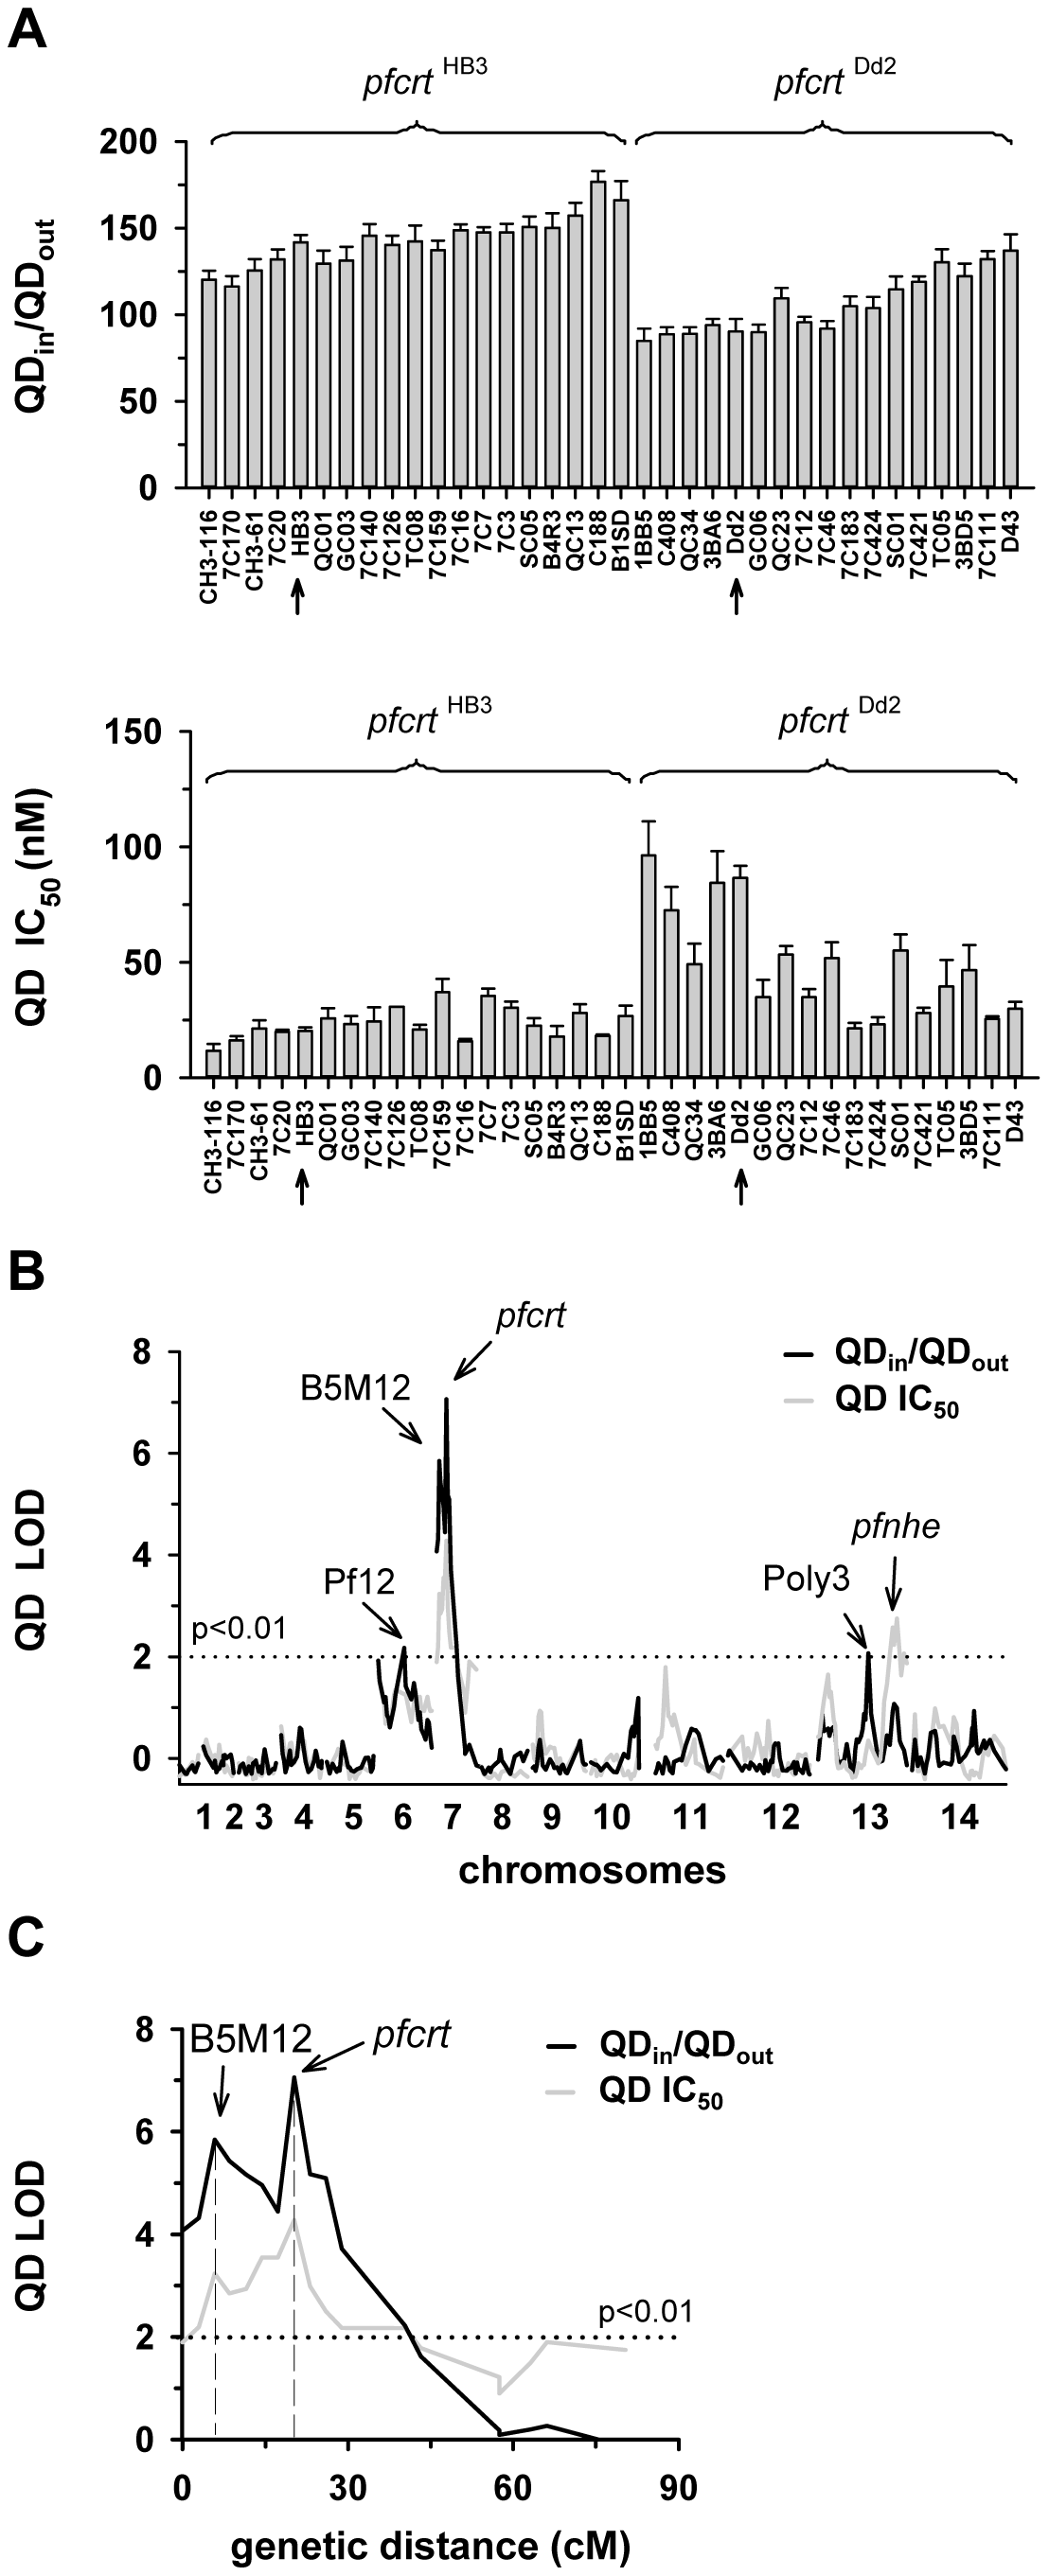 Linkage analyses on quinidine responses in the HB3 x Dd2 cross.